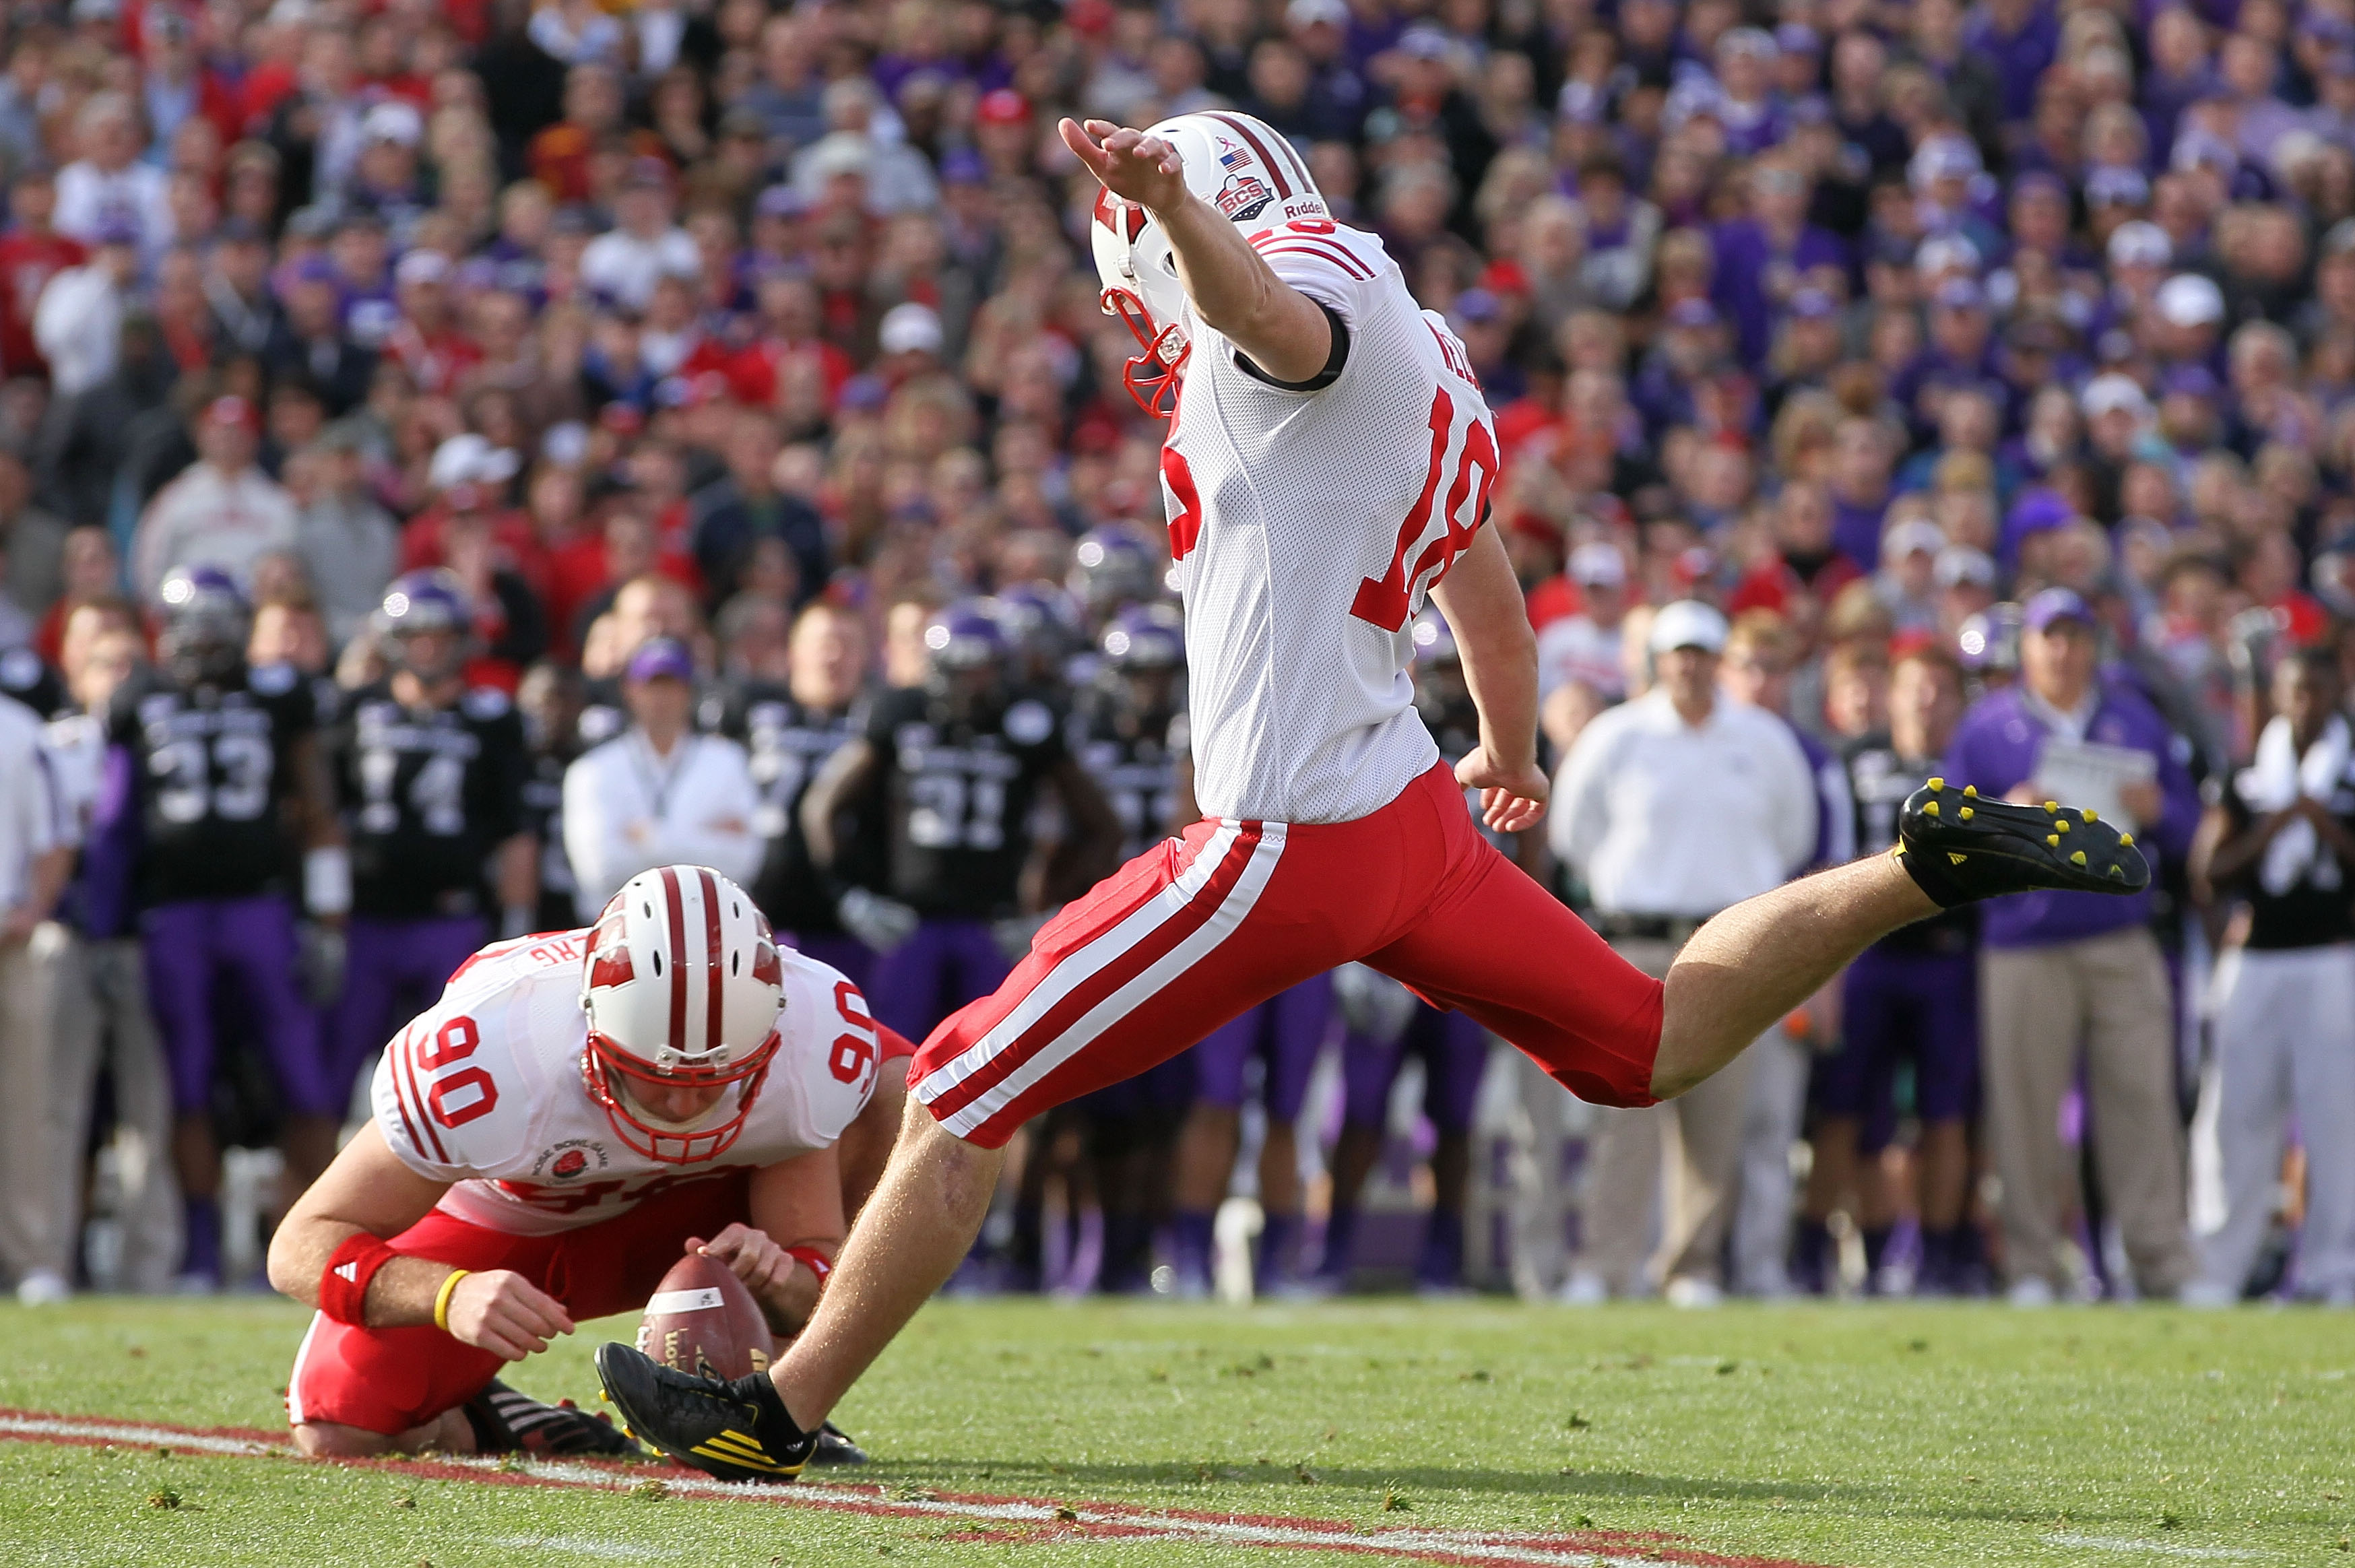 PASADENA, CA - JANUARY 01:  Kicker Philip Welch #18 of the Wisconsin Badgers attempts a field goal against the TCU Horned Frogs during the 97th Rose Bowl game on January 1, 2011 in Pasadena, California.  (Photo by Jeff Gross/Getty Images)